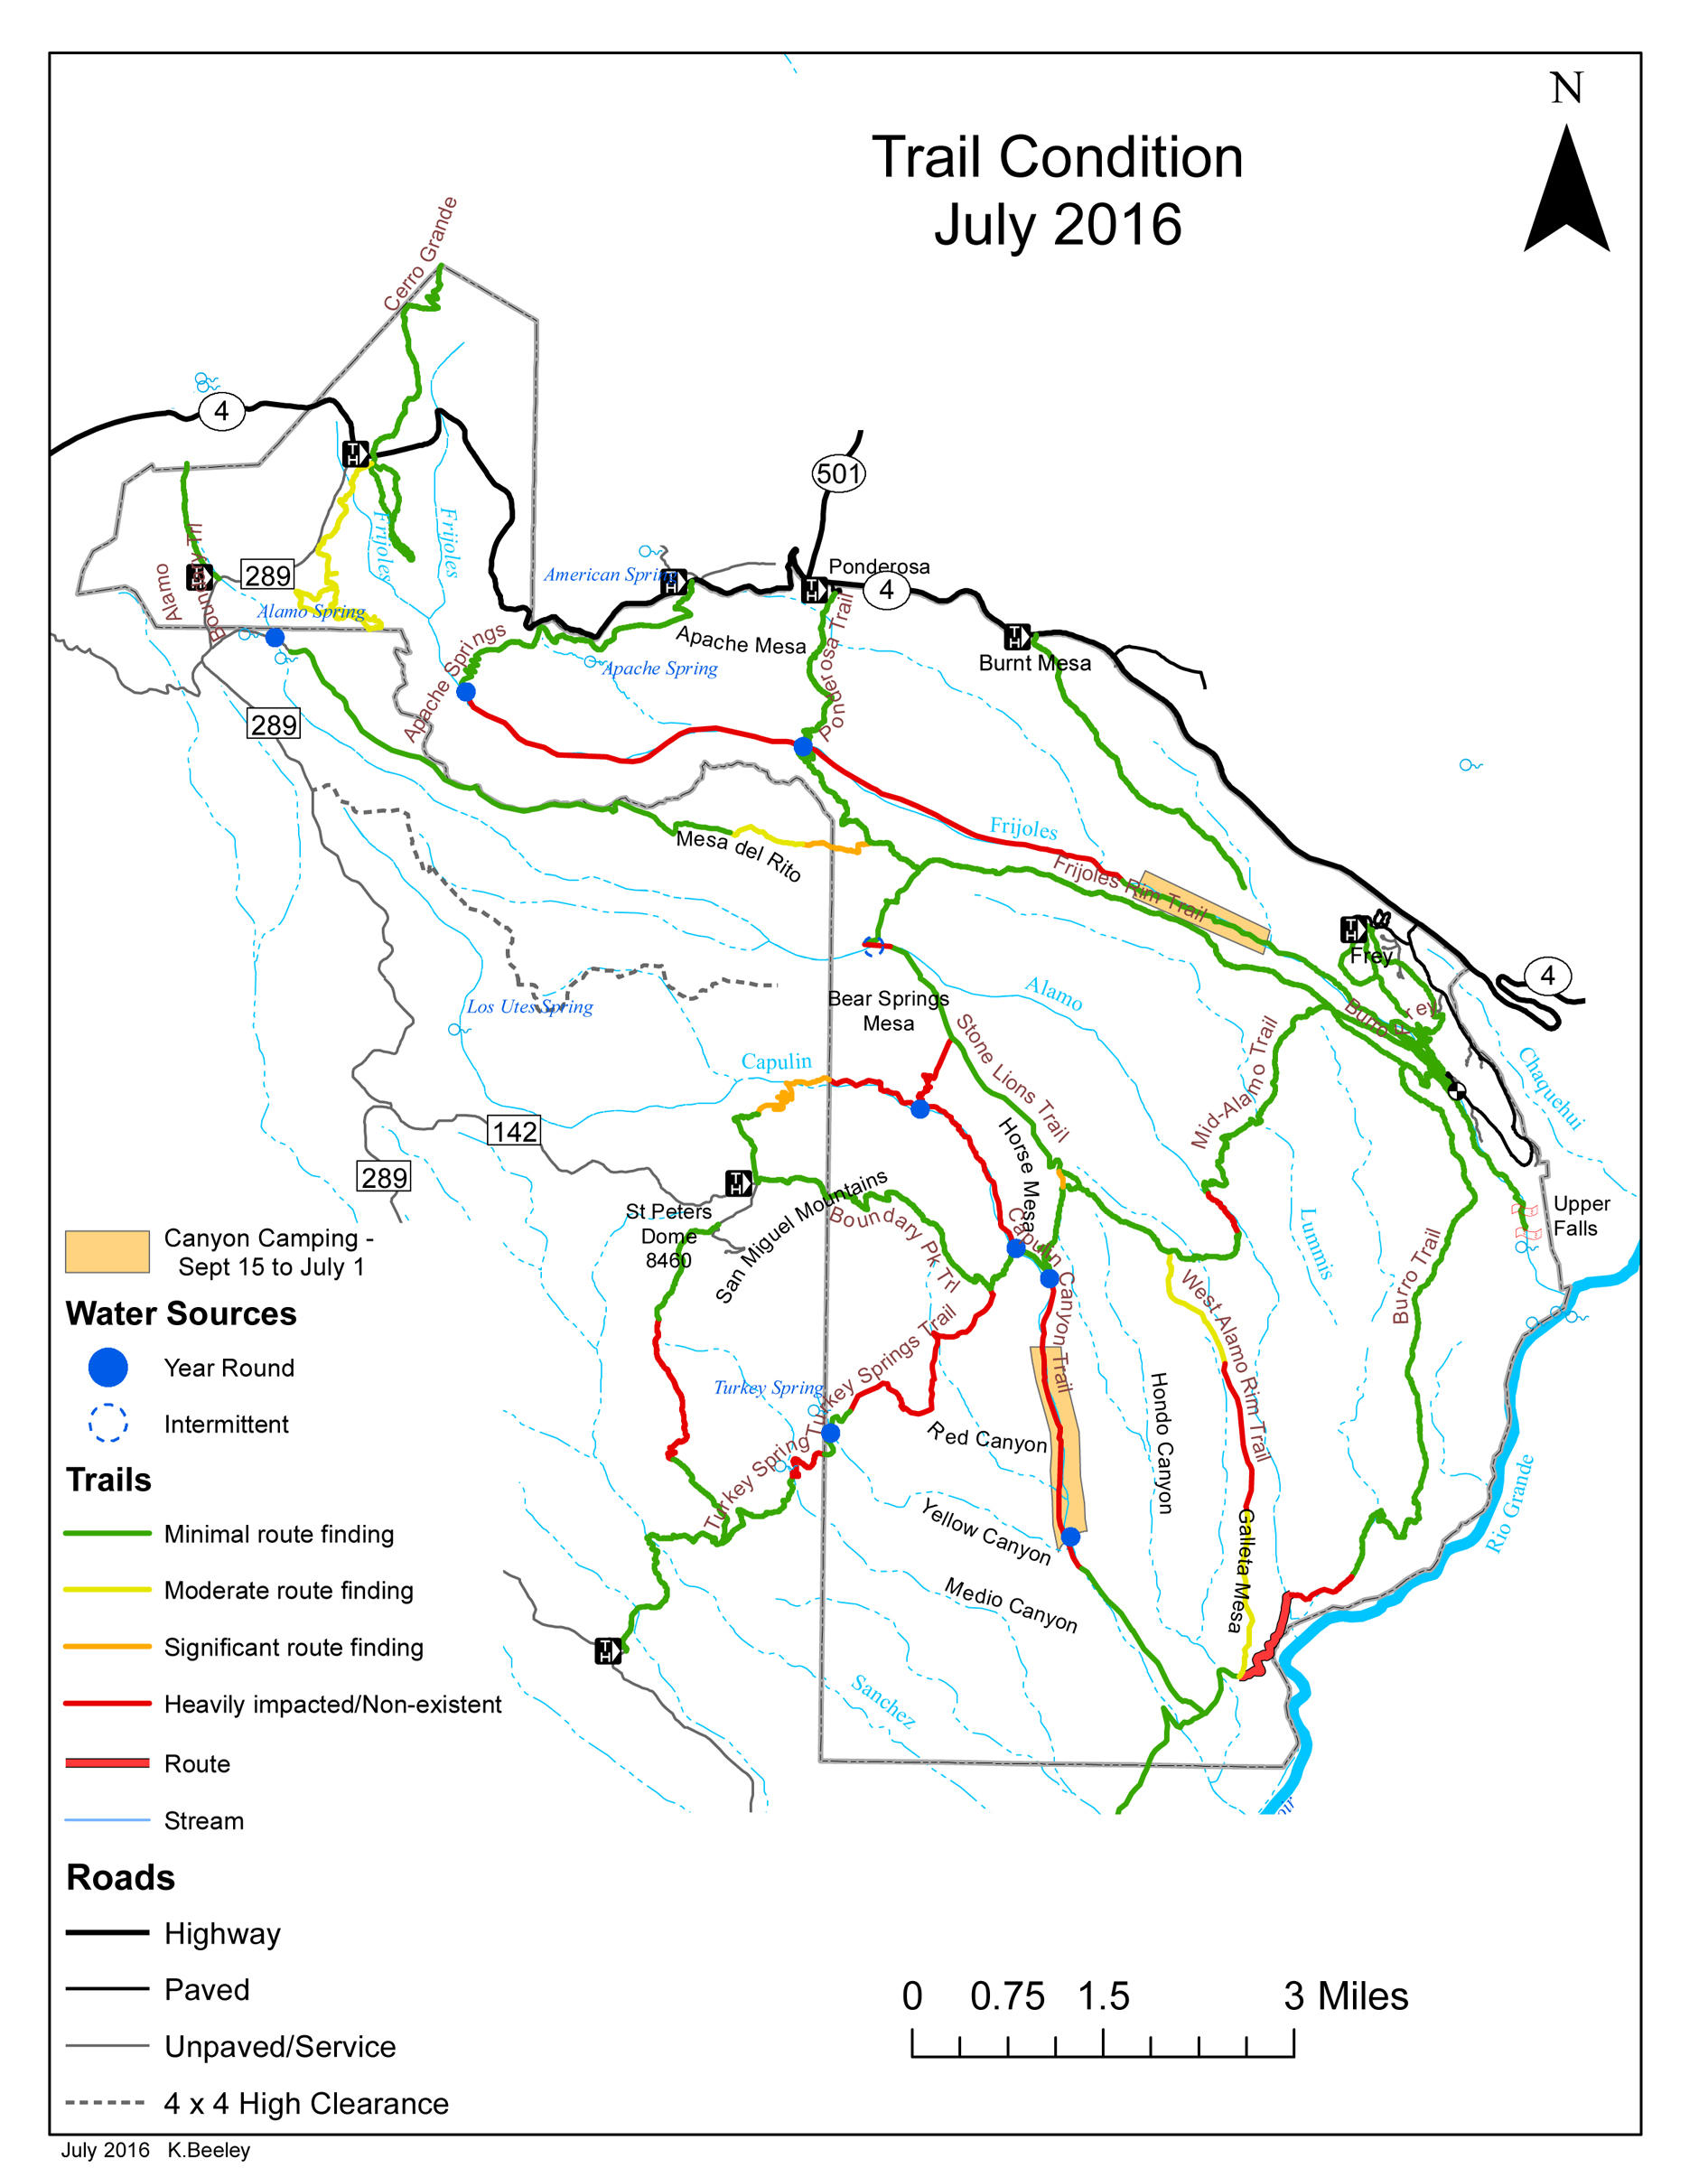 July 2016 trail conditions map